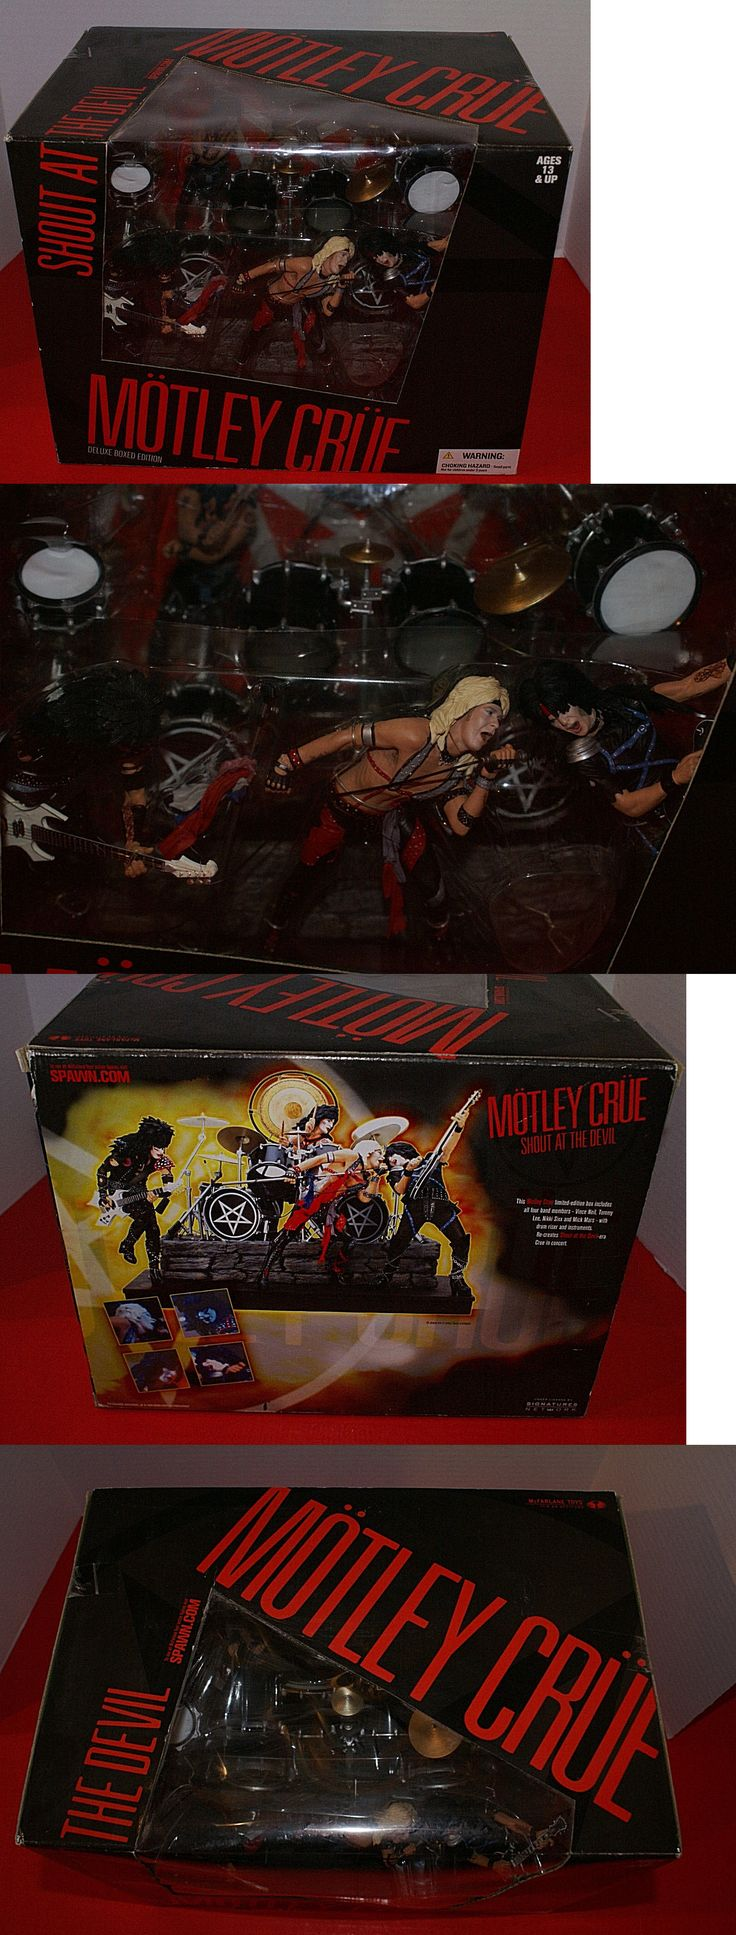 Music 175691: Mcfarlane Motley Crue Shout At The Devil Deluxe Boxed Set Nib New Sealed Rare! -> BUY IT NOW ONLY: $275 on eBay!